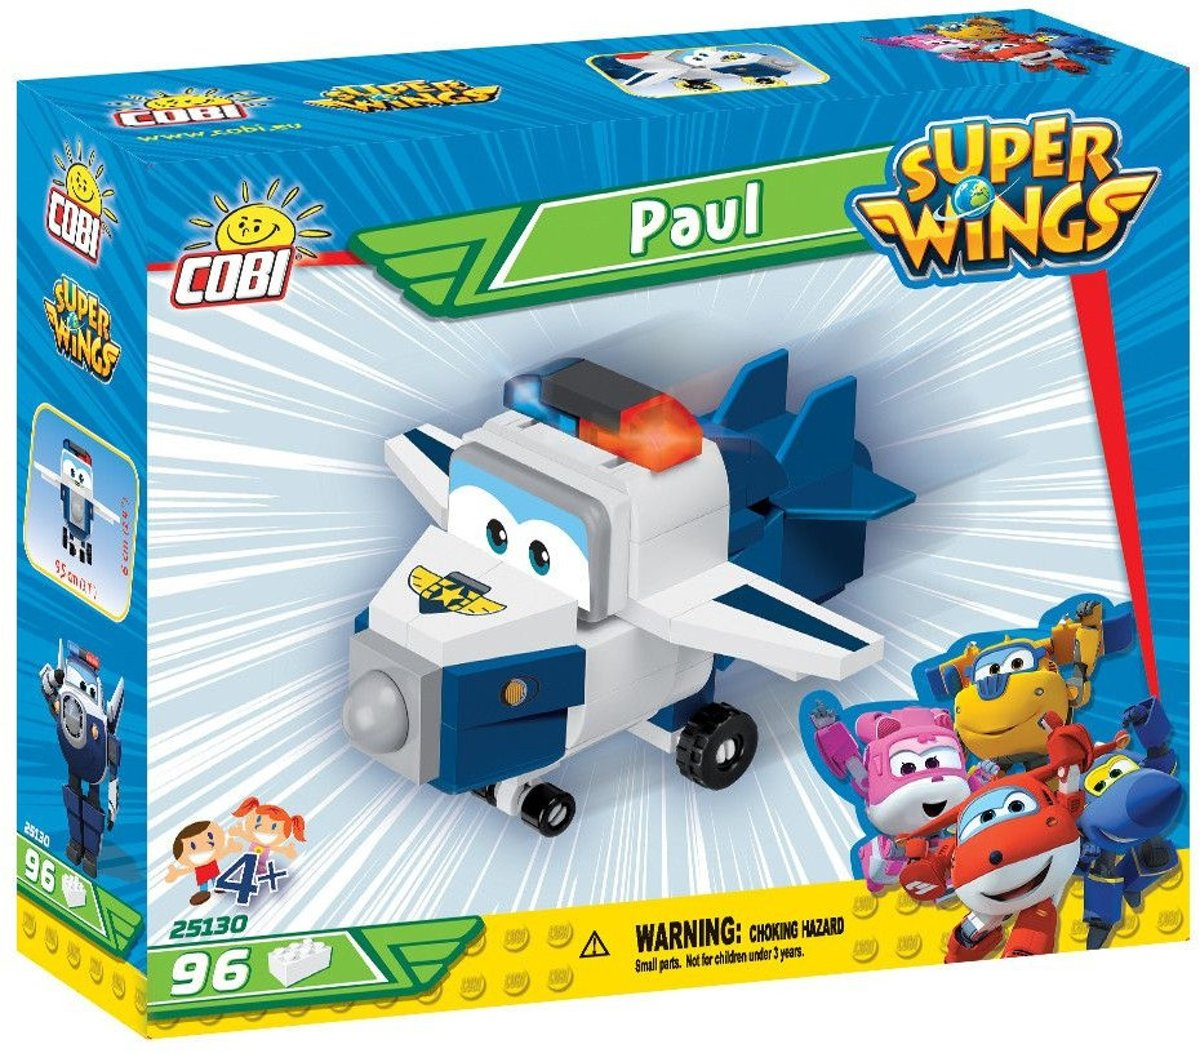 Cobi 97 Pcs Super Wings /25130/ Paul